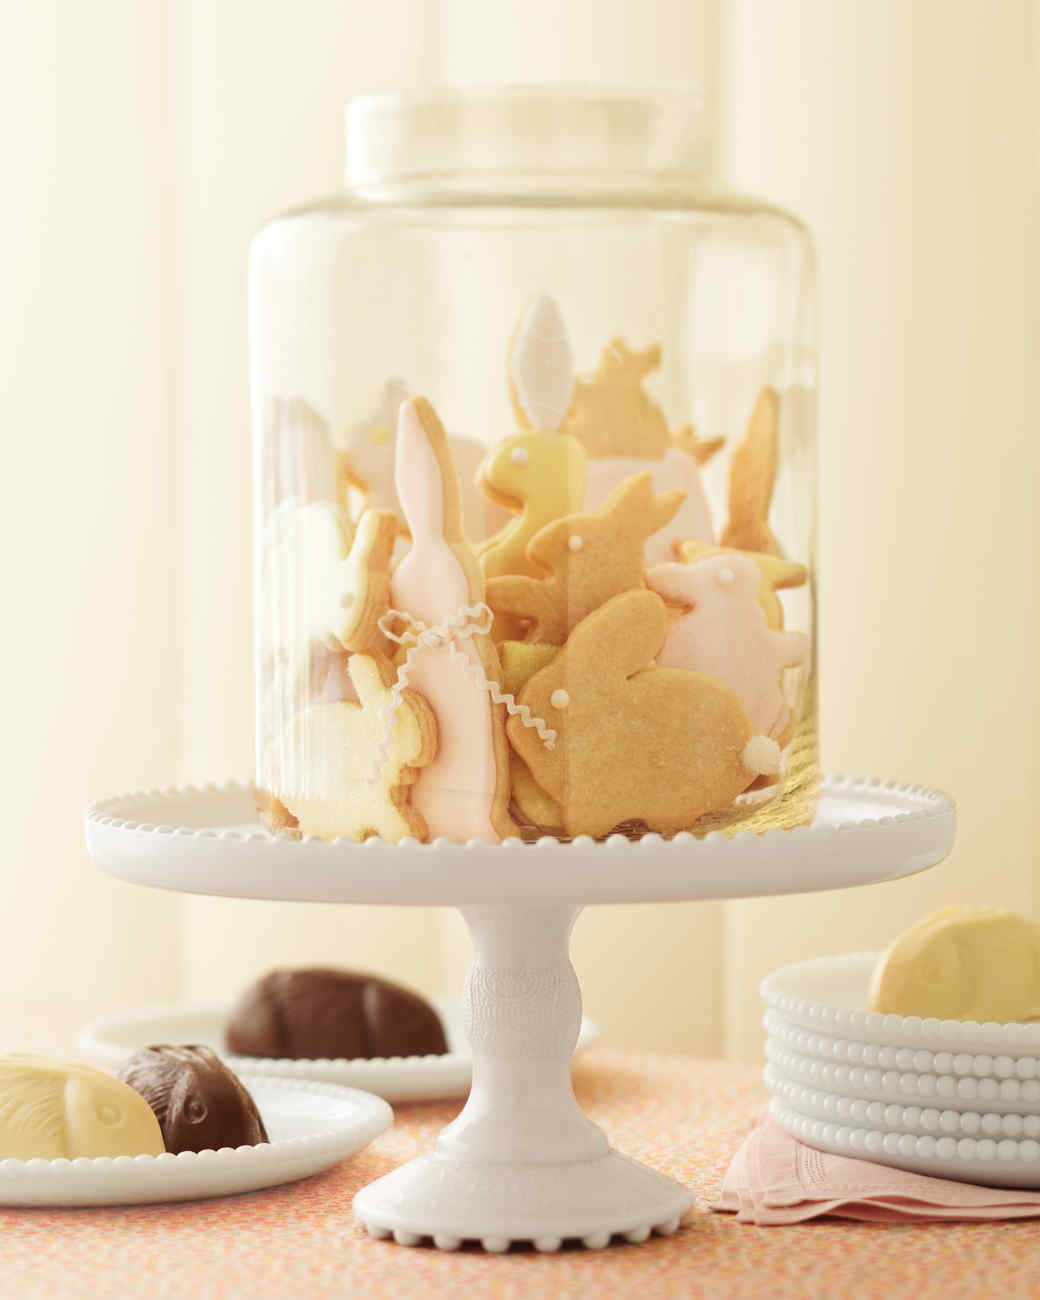 mld106987_0411_bunnies_cookiejar.jpg